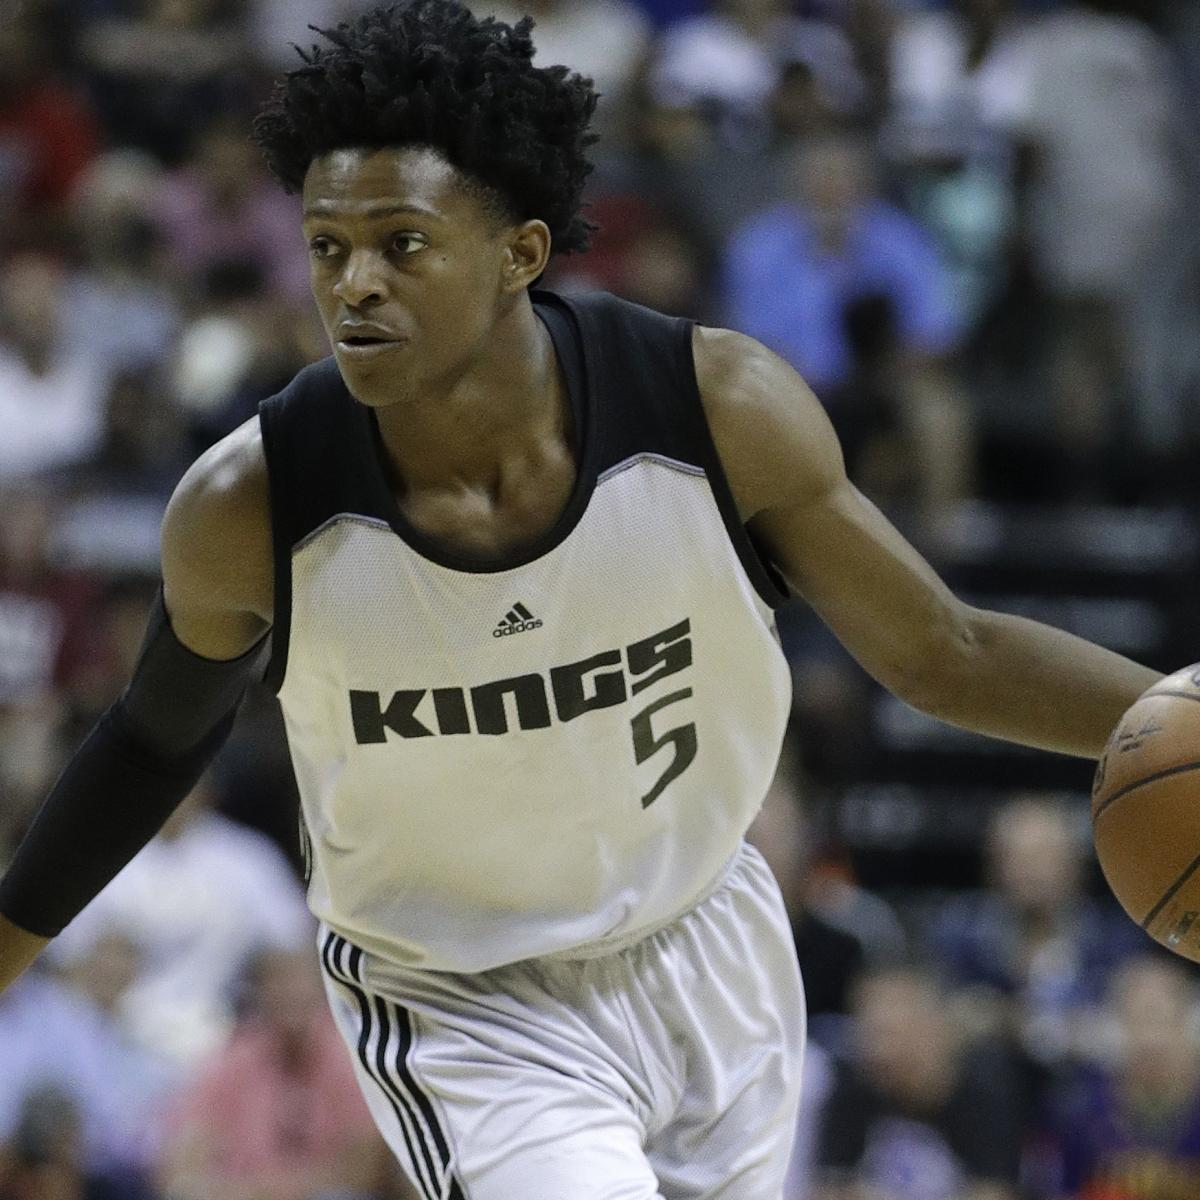 De'Aaron Fox Day-to-Day with Back Injury, Out vs. Trail Blazers